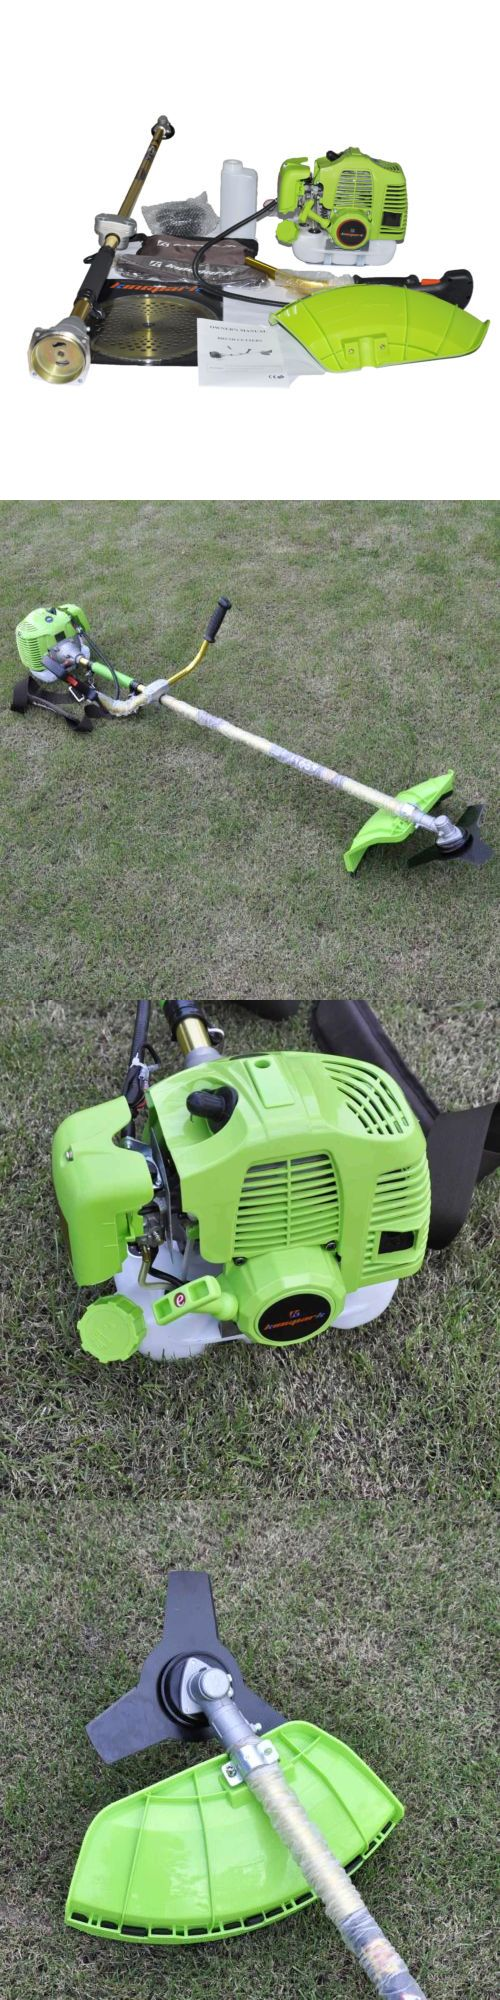 Hedge Trimmers 71268: Multi 52Cc Gasoline Crush Cutter 2 Stroke Grass Trimmer Strimmer Cutter 1.7Kw Us -> BUY IT NOW ONLY: $95.19 on eBay!